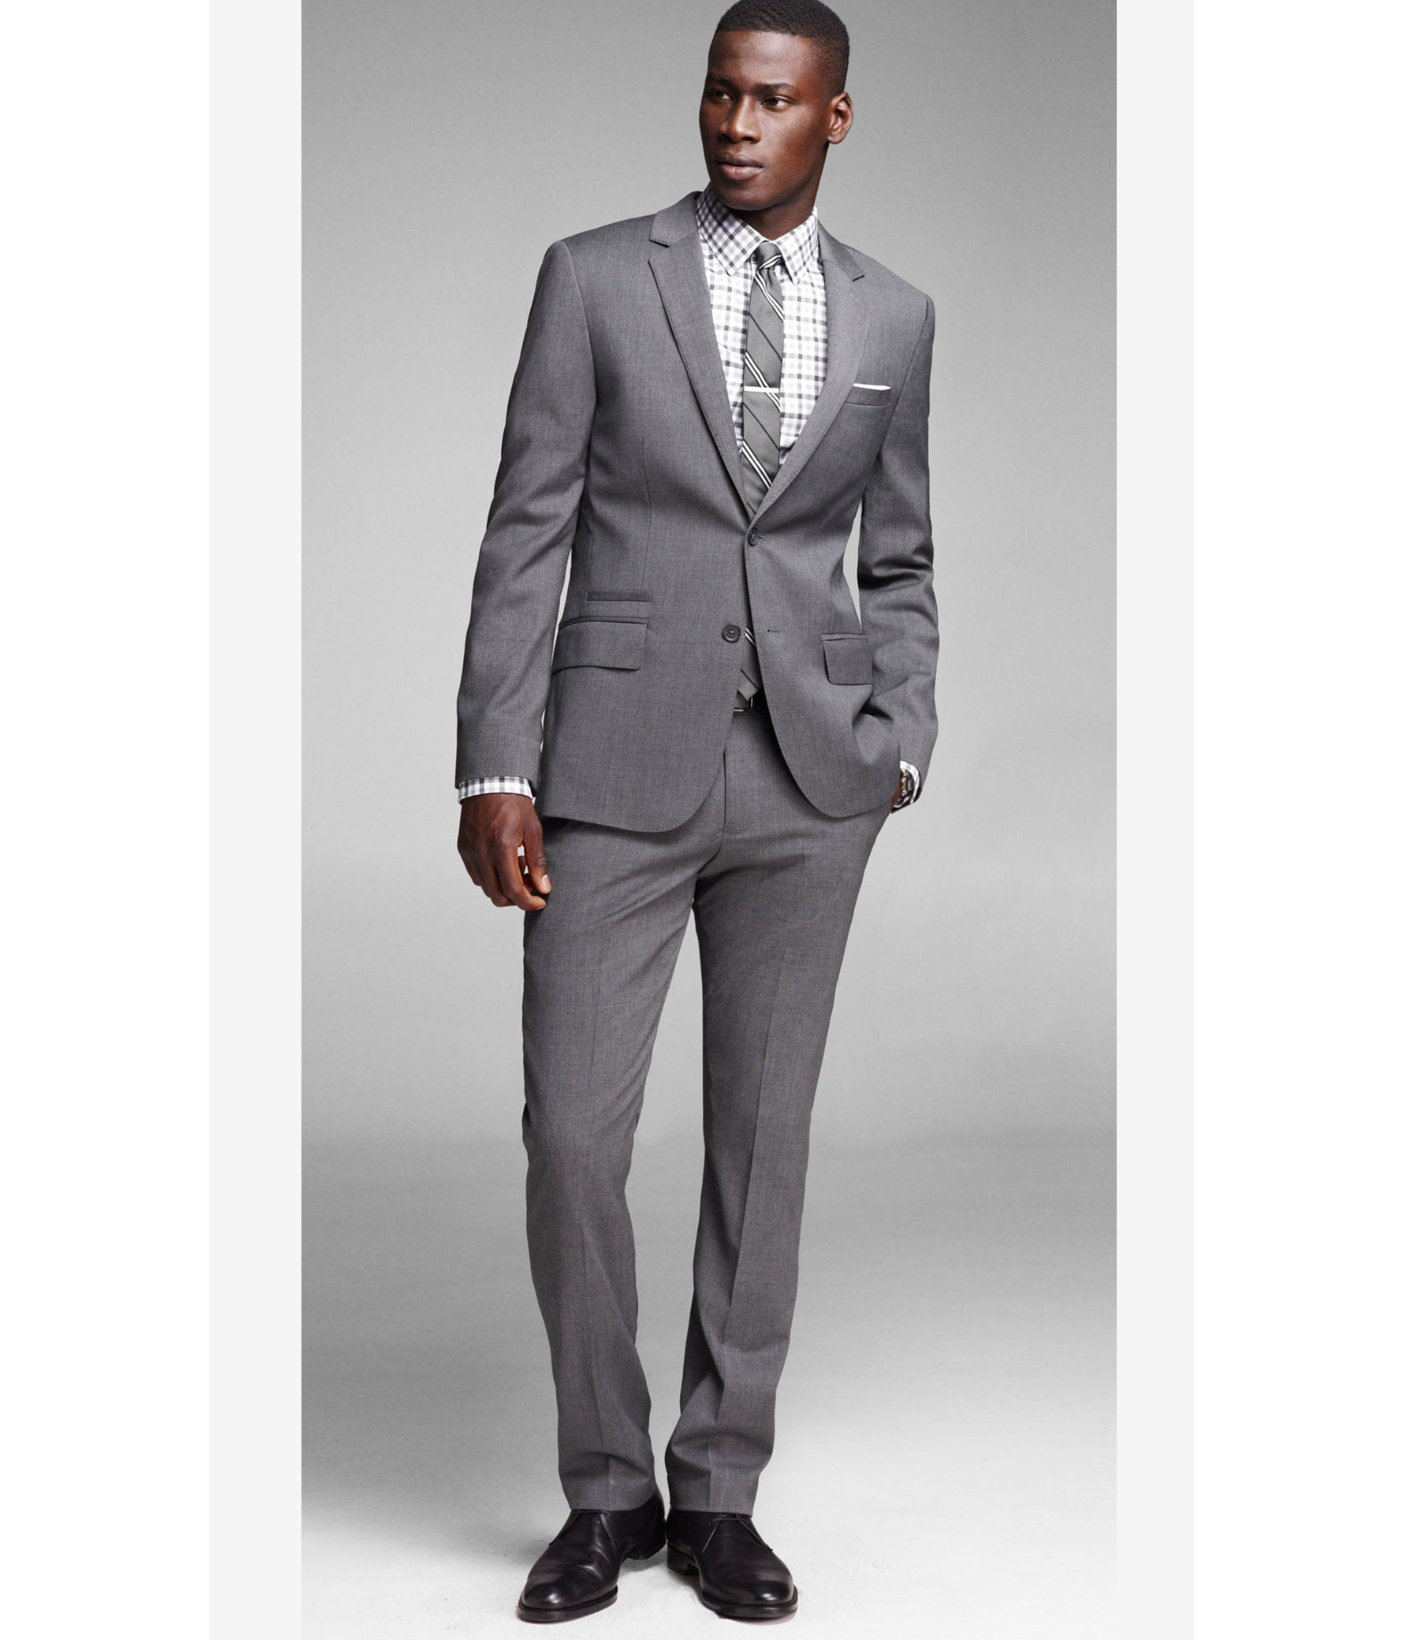 Lyst - Express Gray Photographer Suit Jacket in Gray for Men